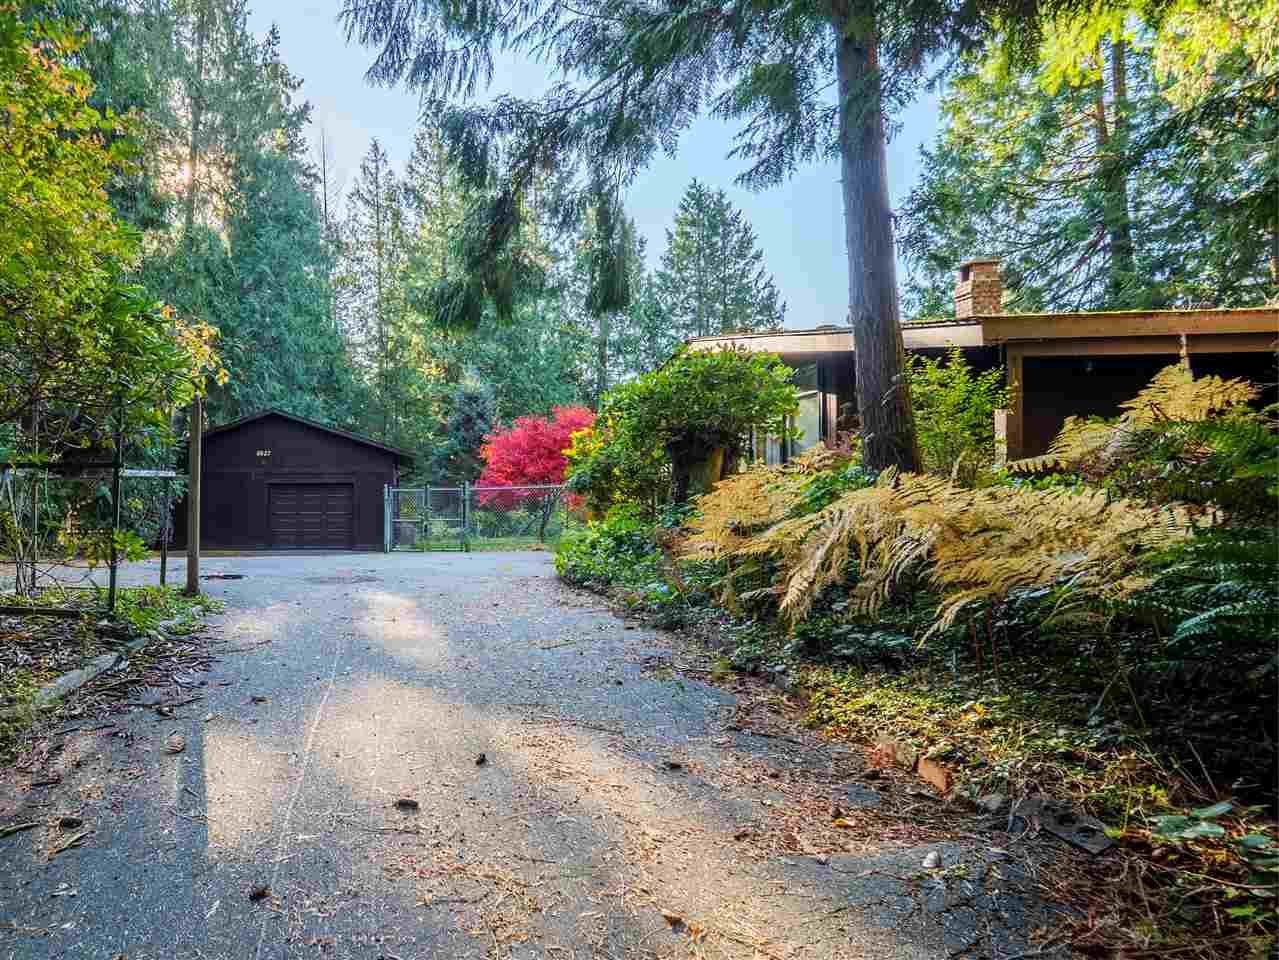 Rural .57 acre property in Welcome Woods.  Peaceful and serene this property is an oasis in the changing world.